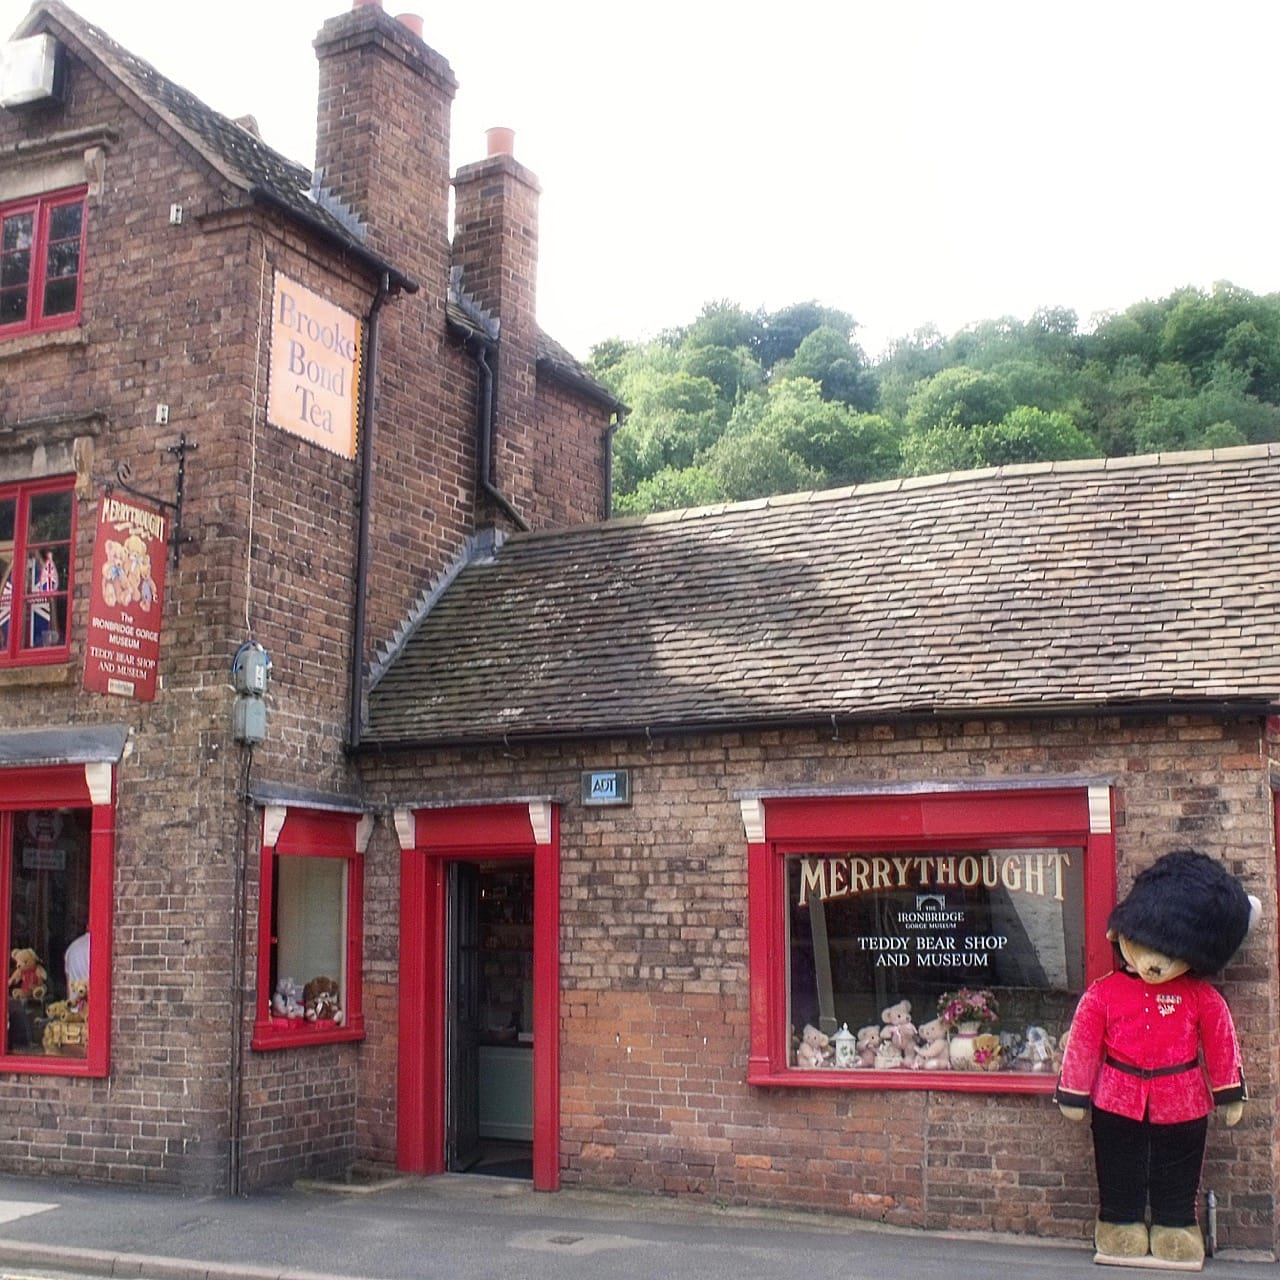 Merrythought Teddy Bear Shop and Museum, Ironbridge, Shropshire, UK. Photo by Elliott Brown, licensed CC-BY-2.0.